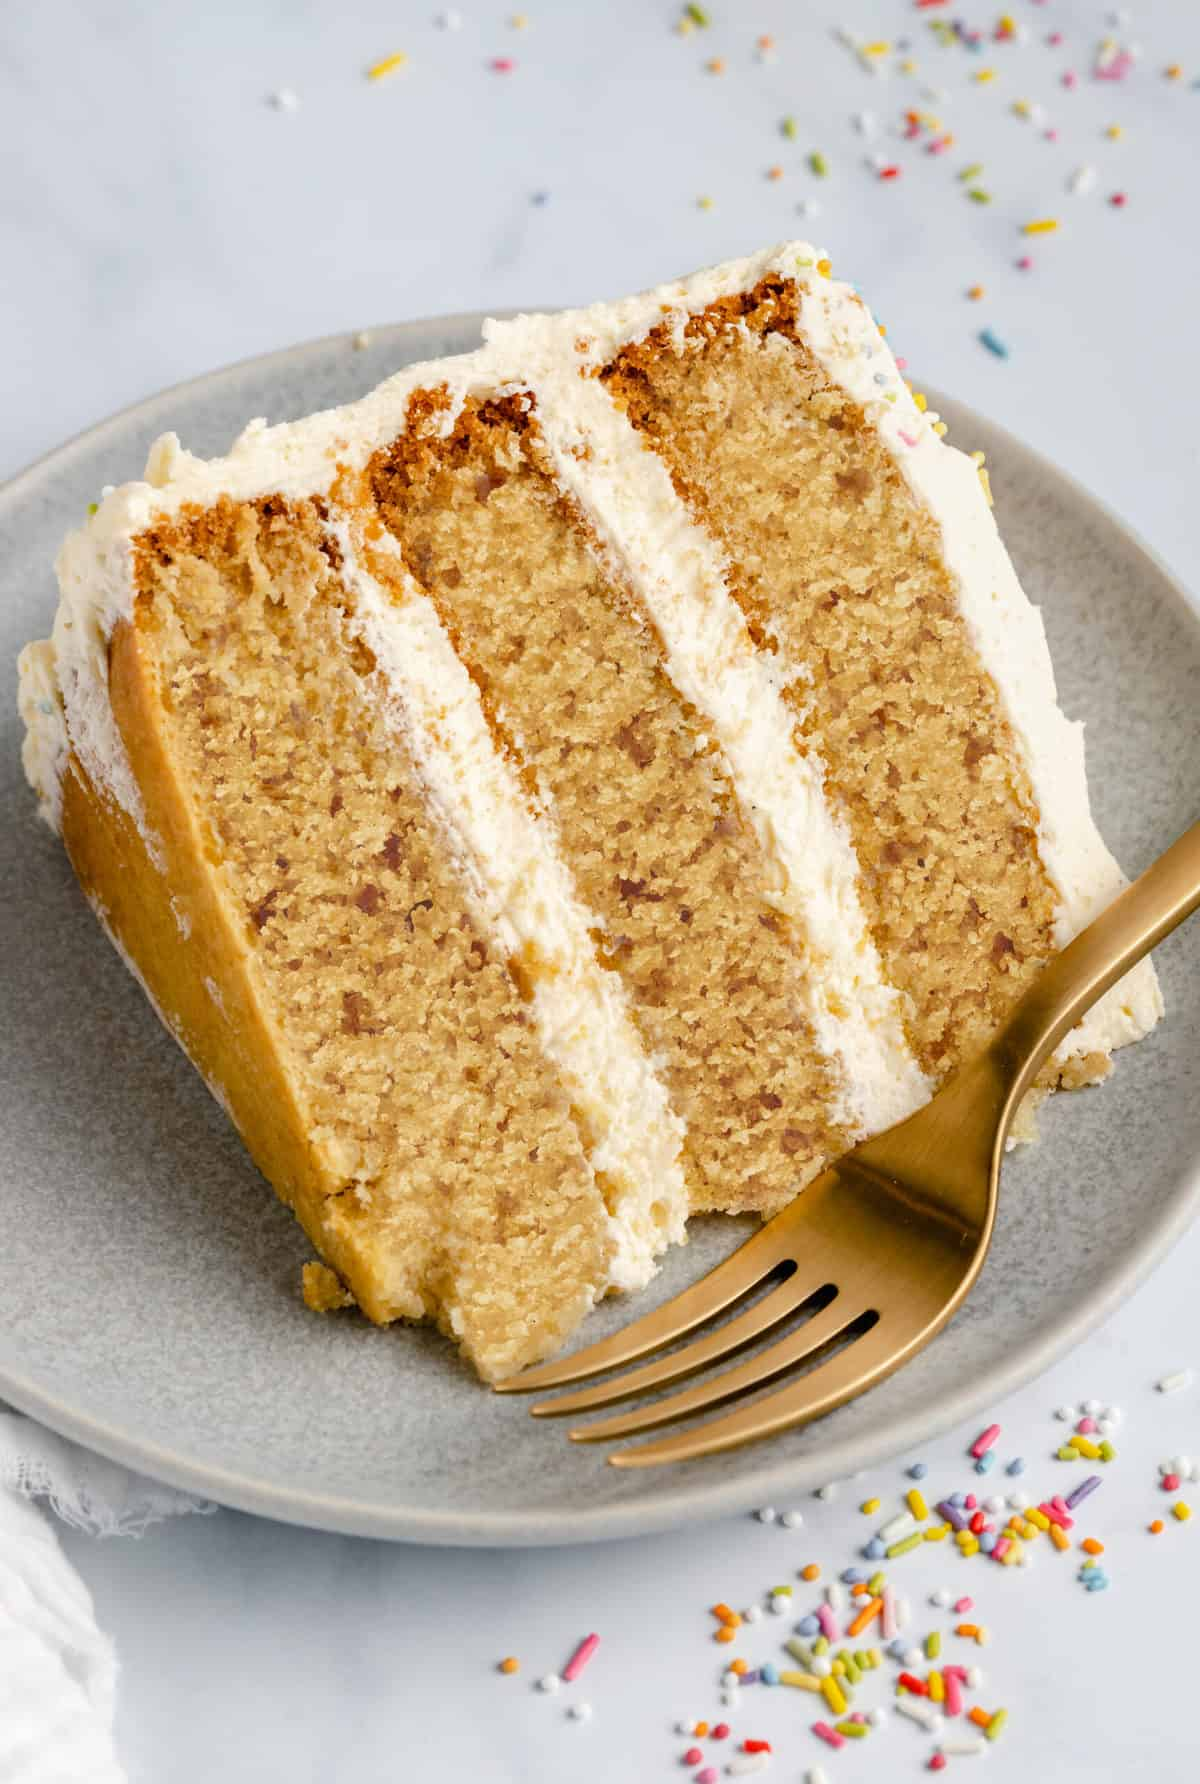 slice of vanilla cake sideways on a plate with gold fork in front of it